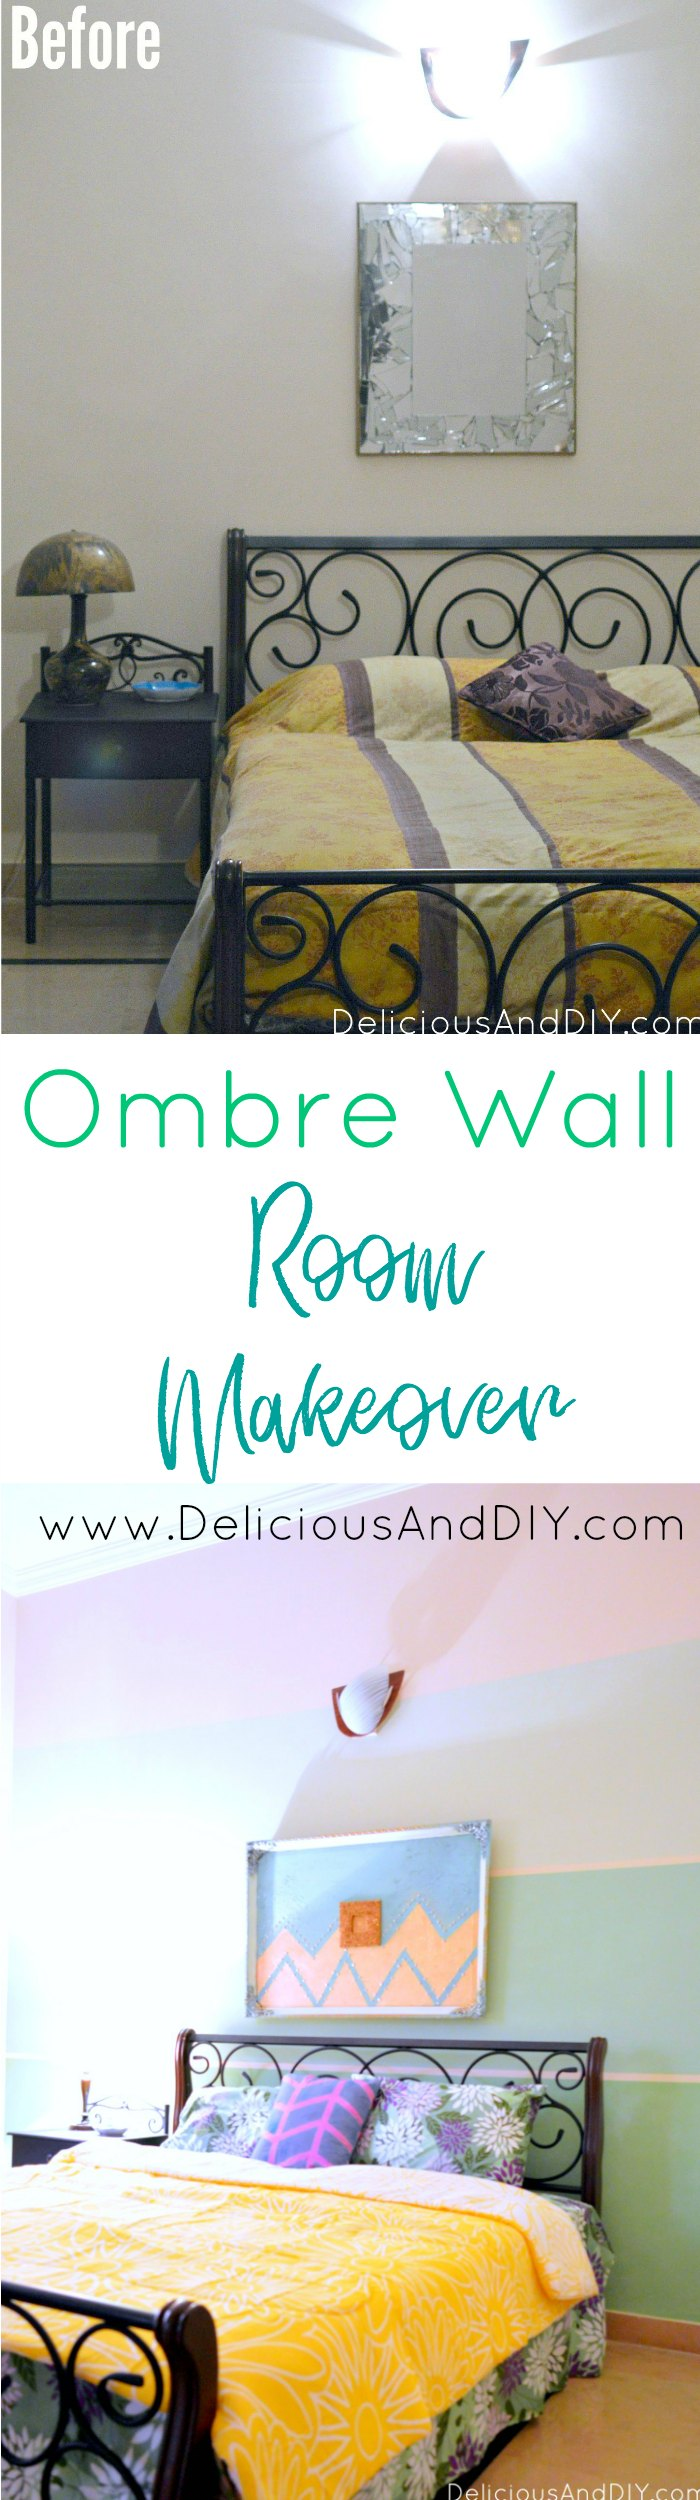 Ombre Wall Room Makeover| Accent Wall| Feature Wall Ideas| Room Makeover Ideas| Masking Tape Projects| Ombre Wall Ideas| Room Decor on a Budget